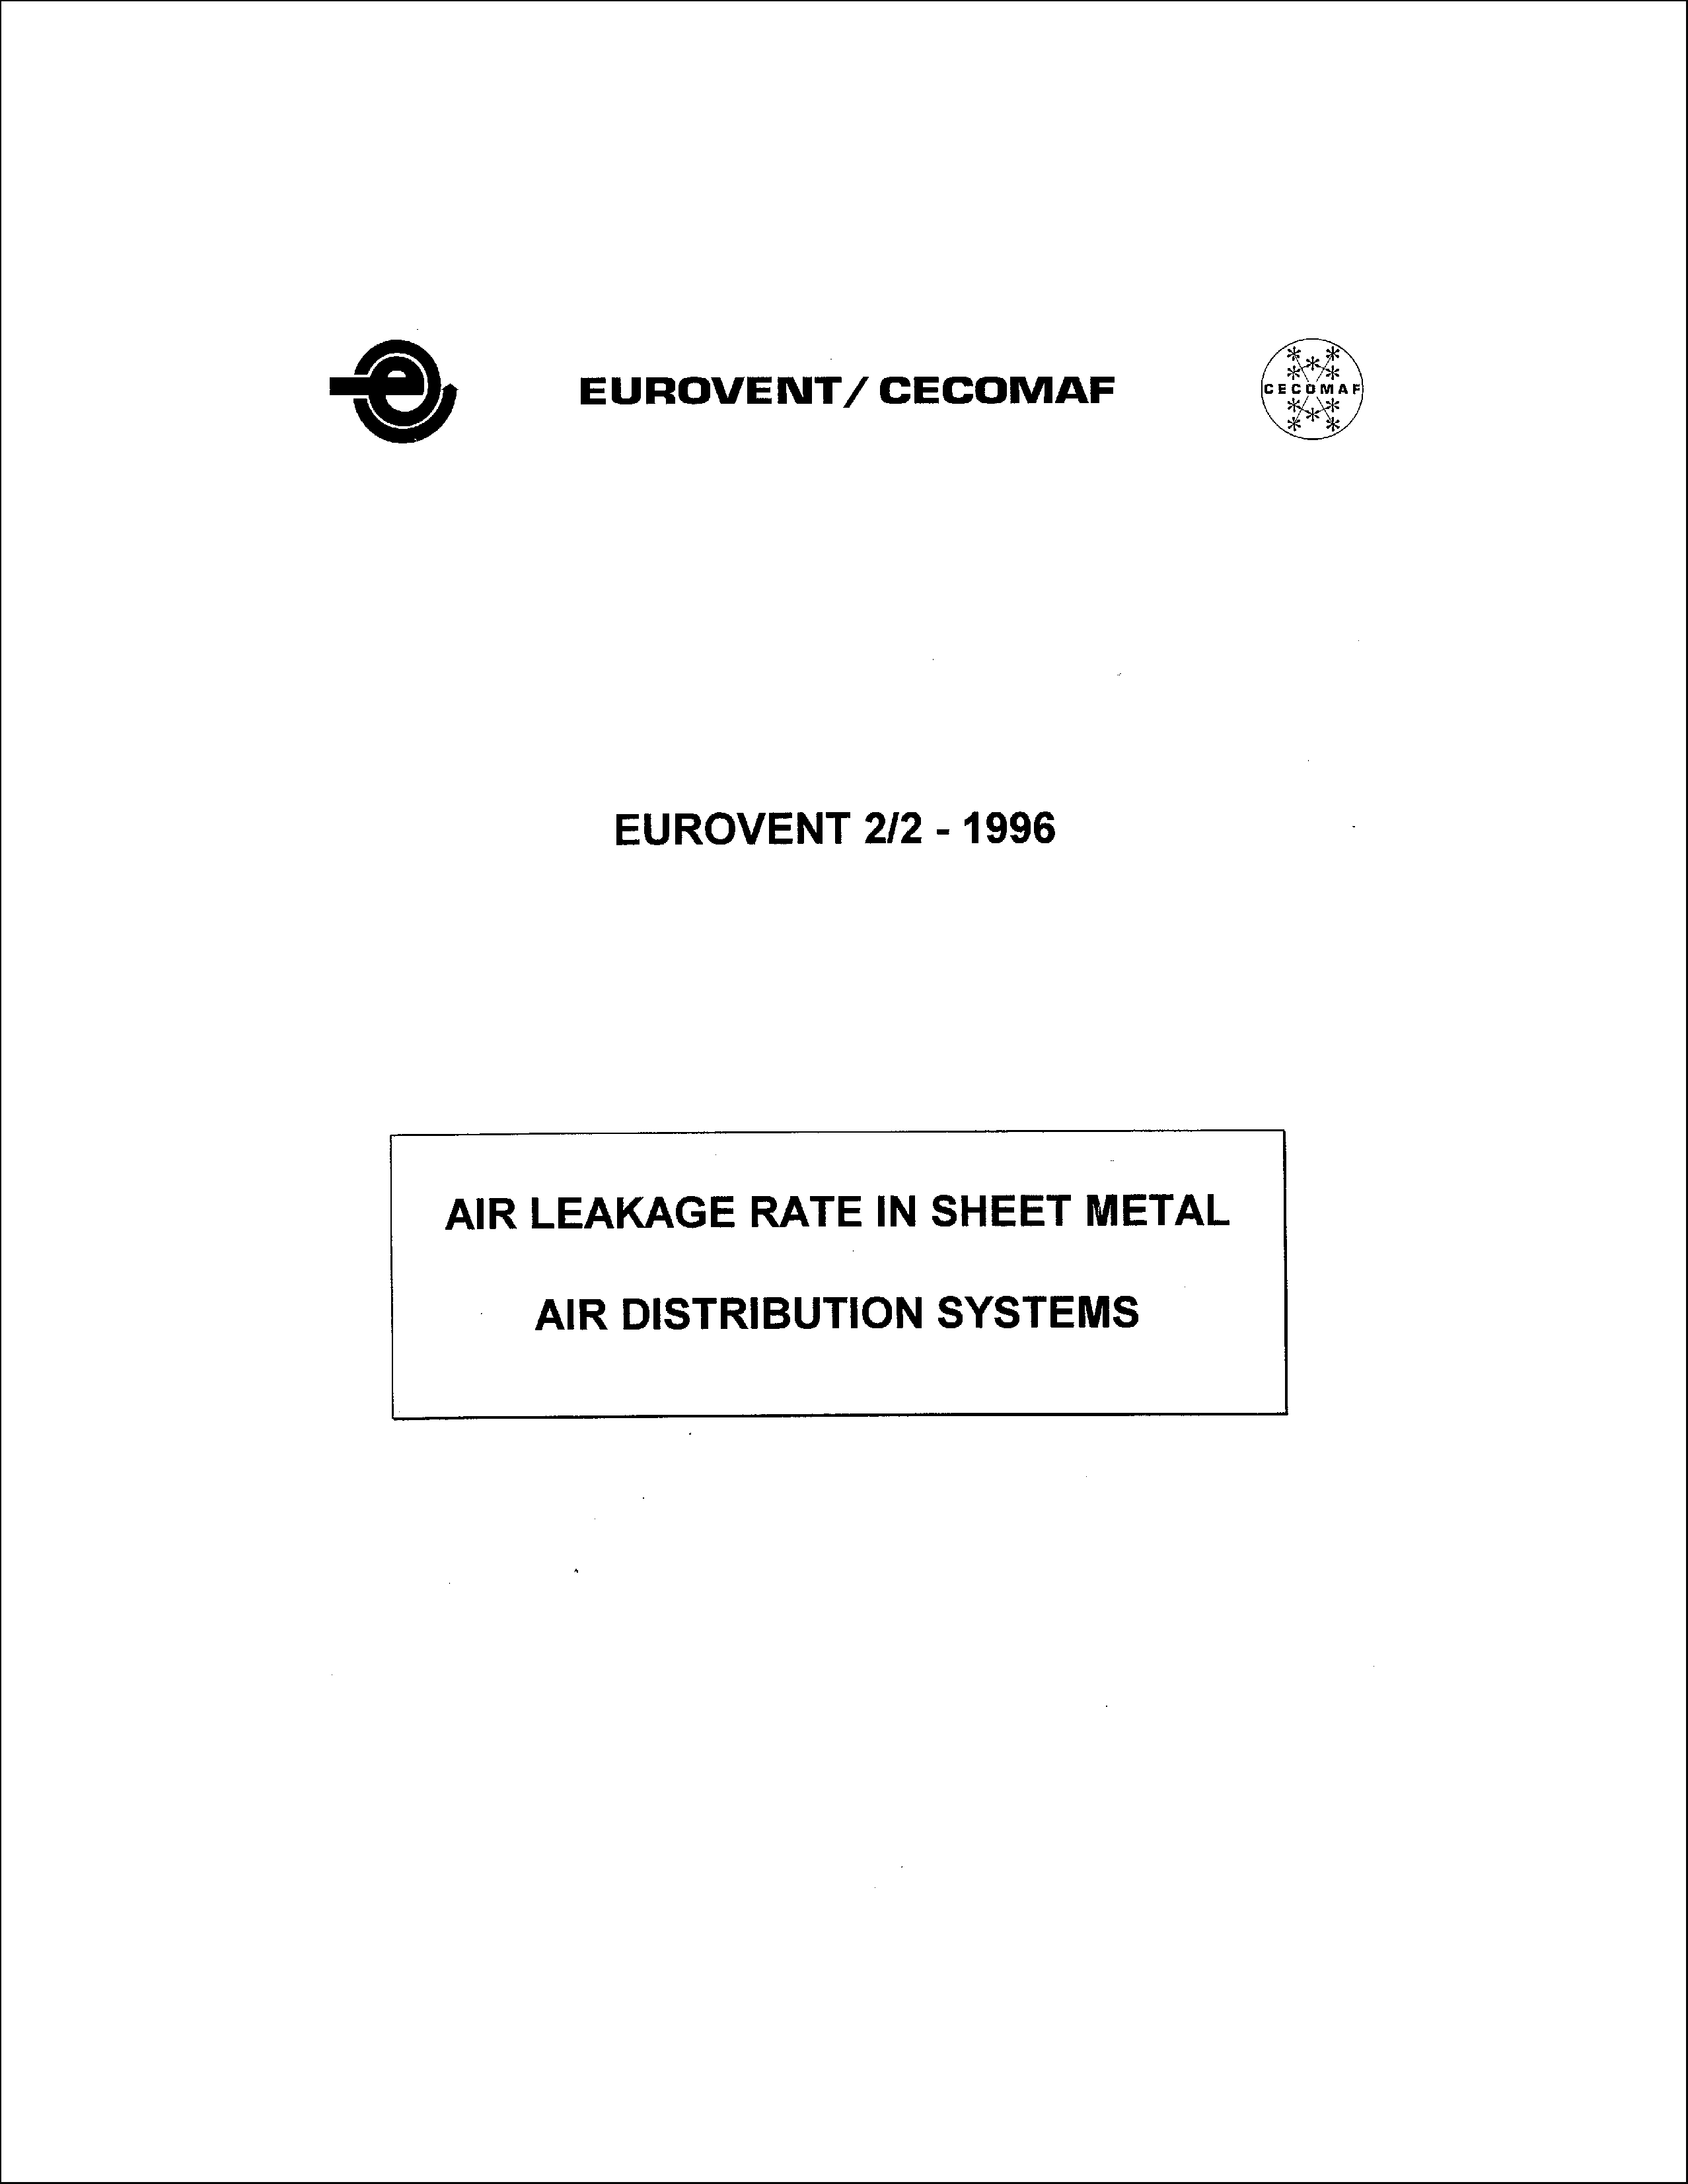 1991 - Air leakage rate in sheet metal - air distribution systems